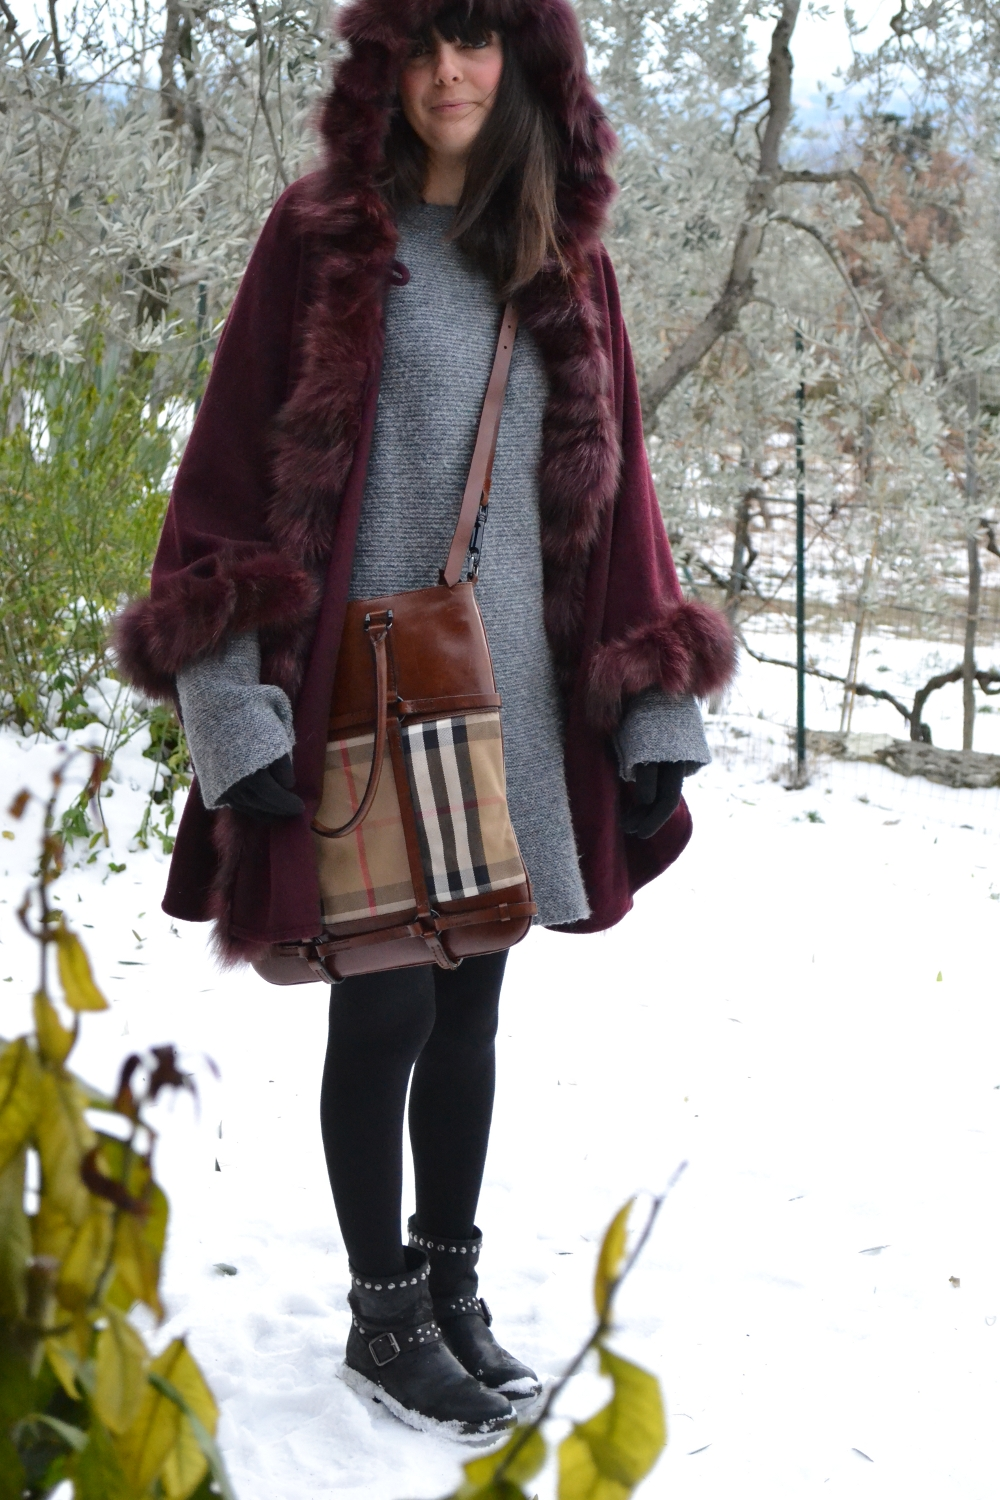 VINTAGE CAPE - burberry bag - florence snow